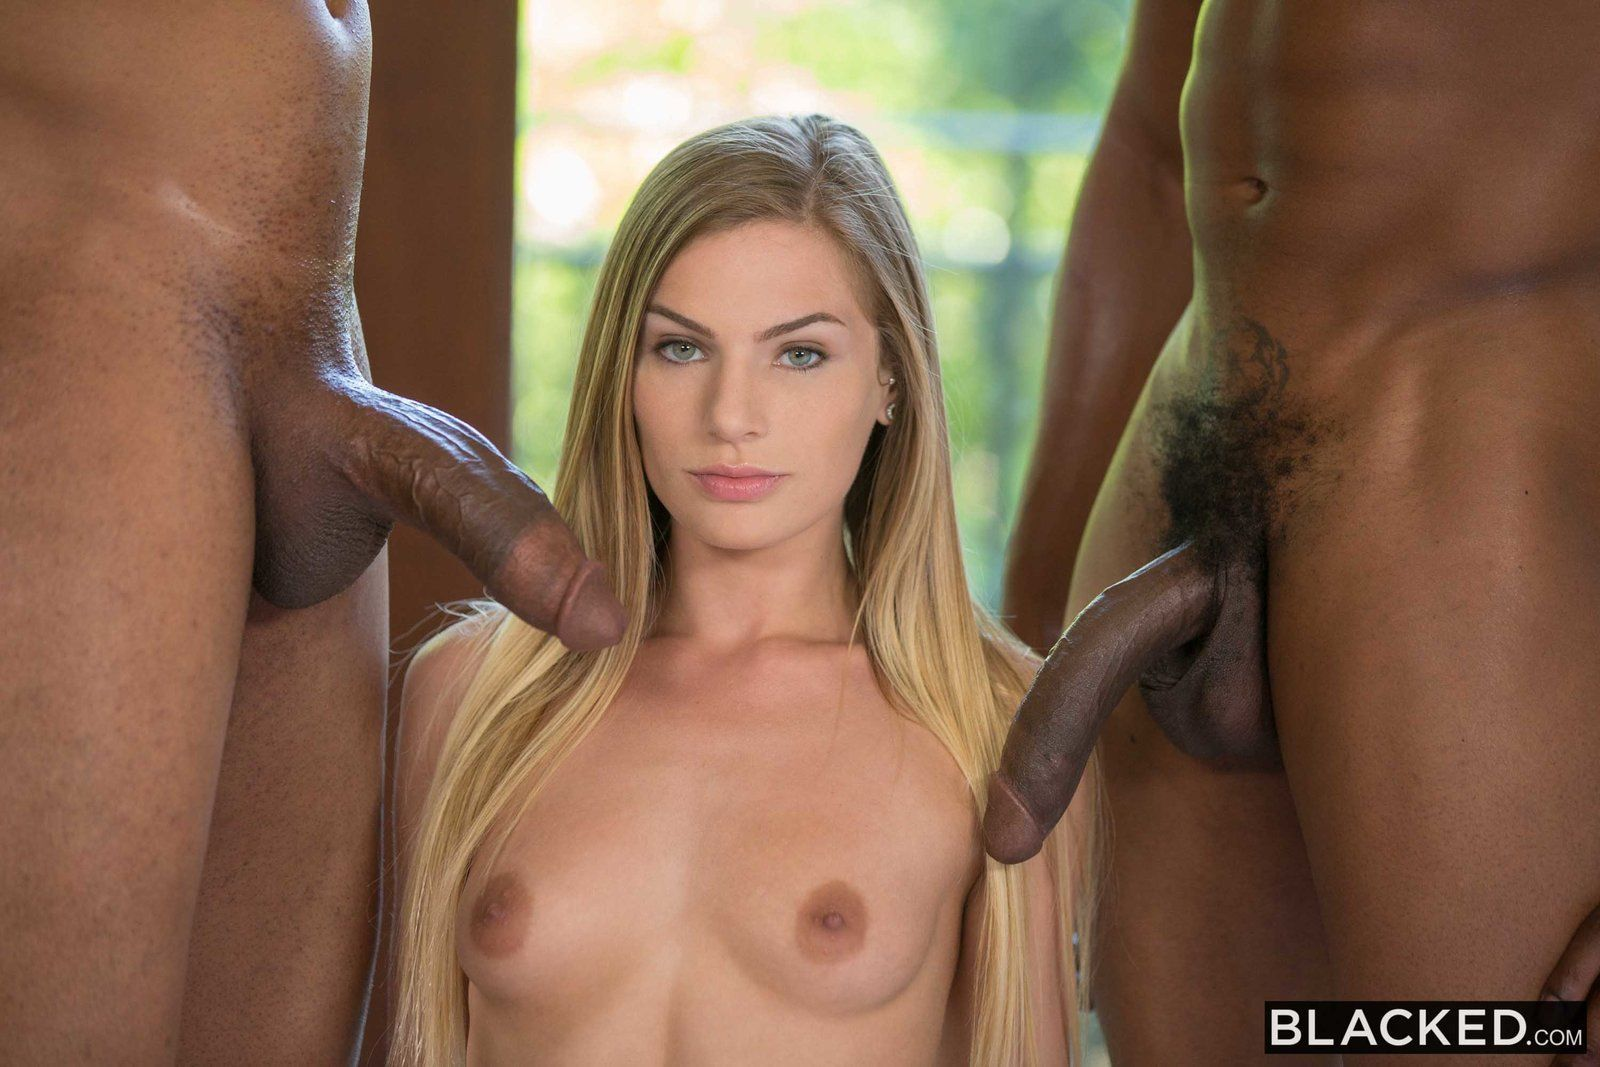 Anita blond threesome